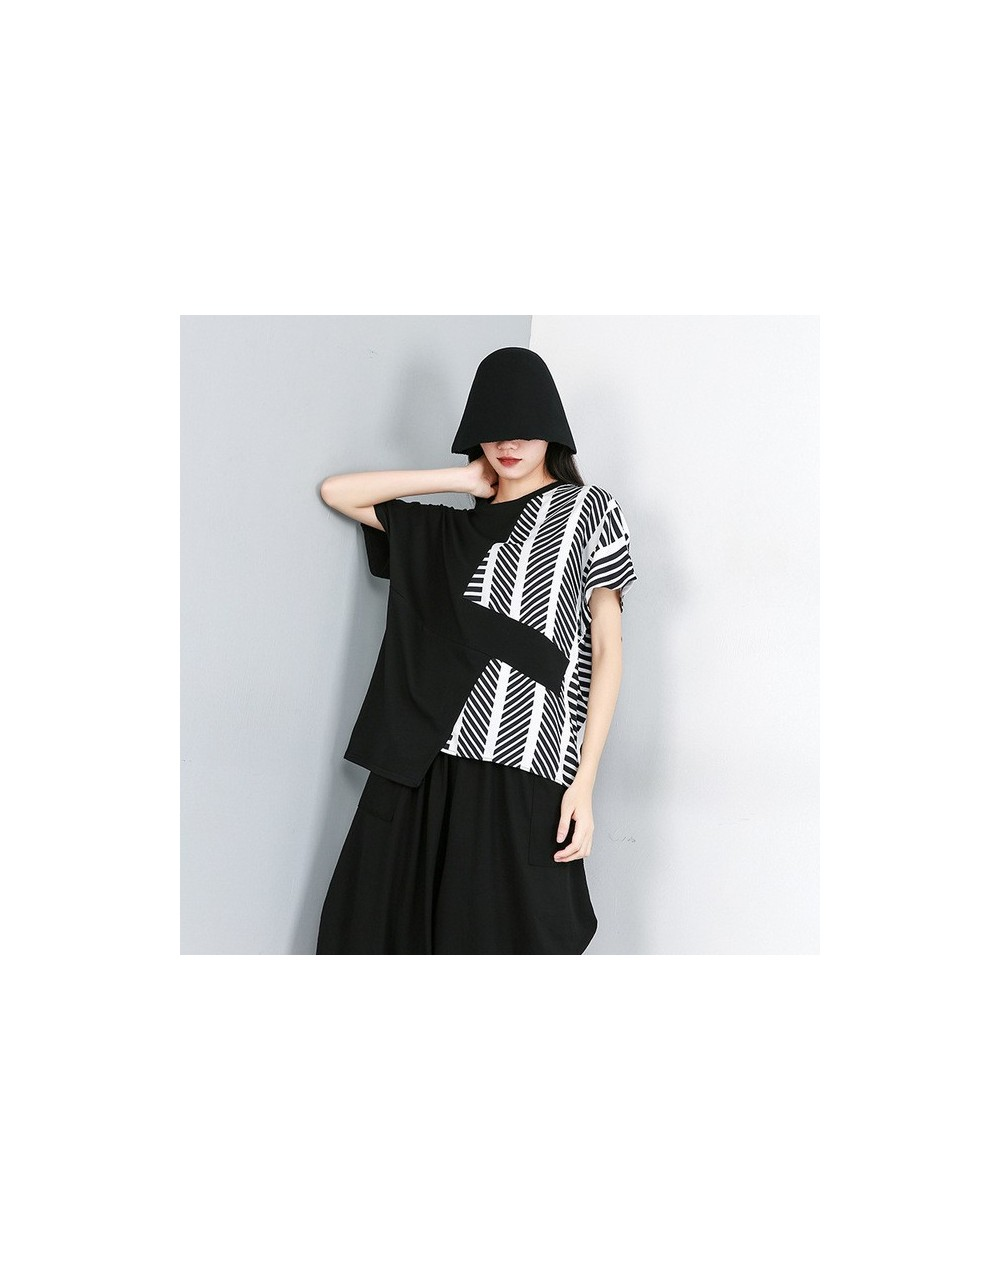 2019 New Summer Fashion Women Clothes Round Neck Batwing Sleeves Striped Contrast Colors Loose Shirt Female Top WH19400 - bl...